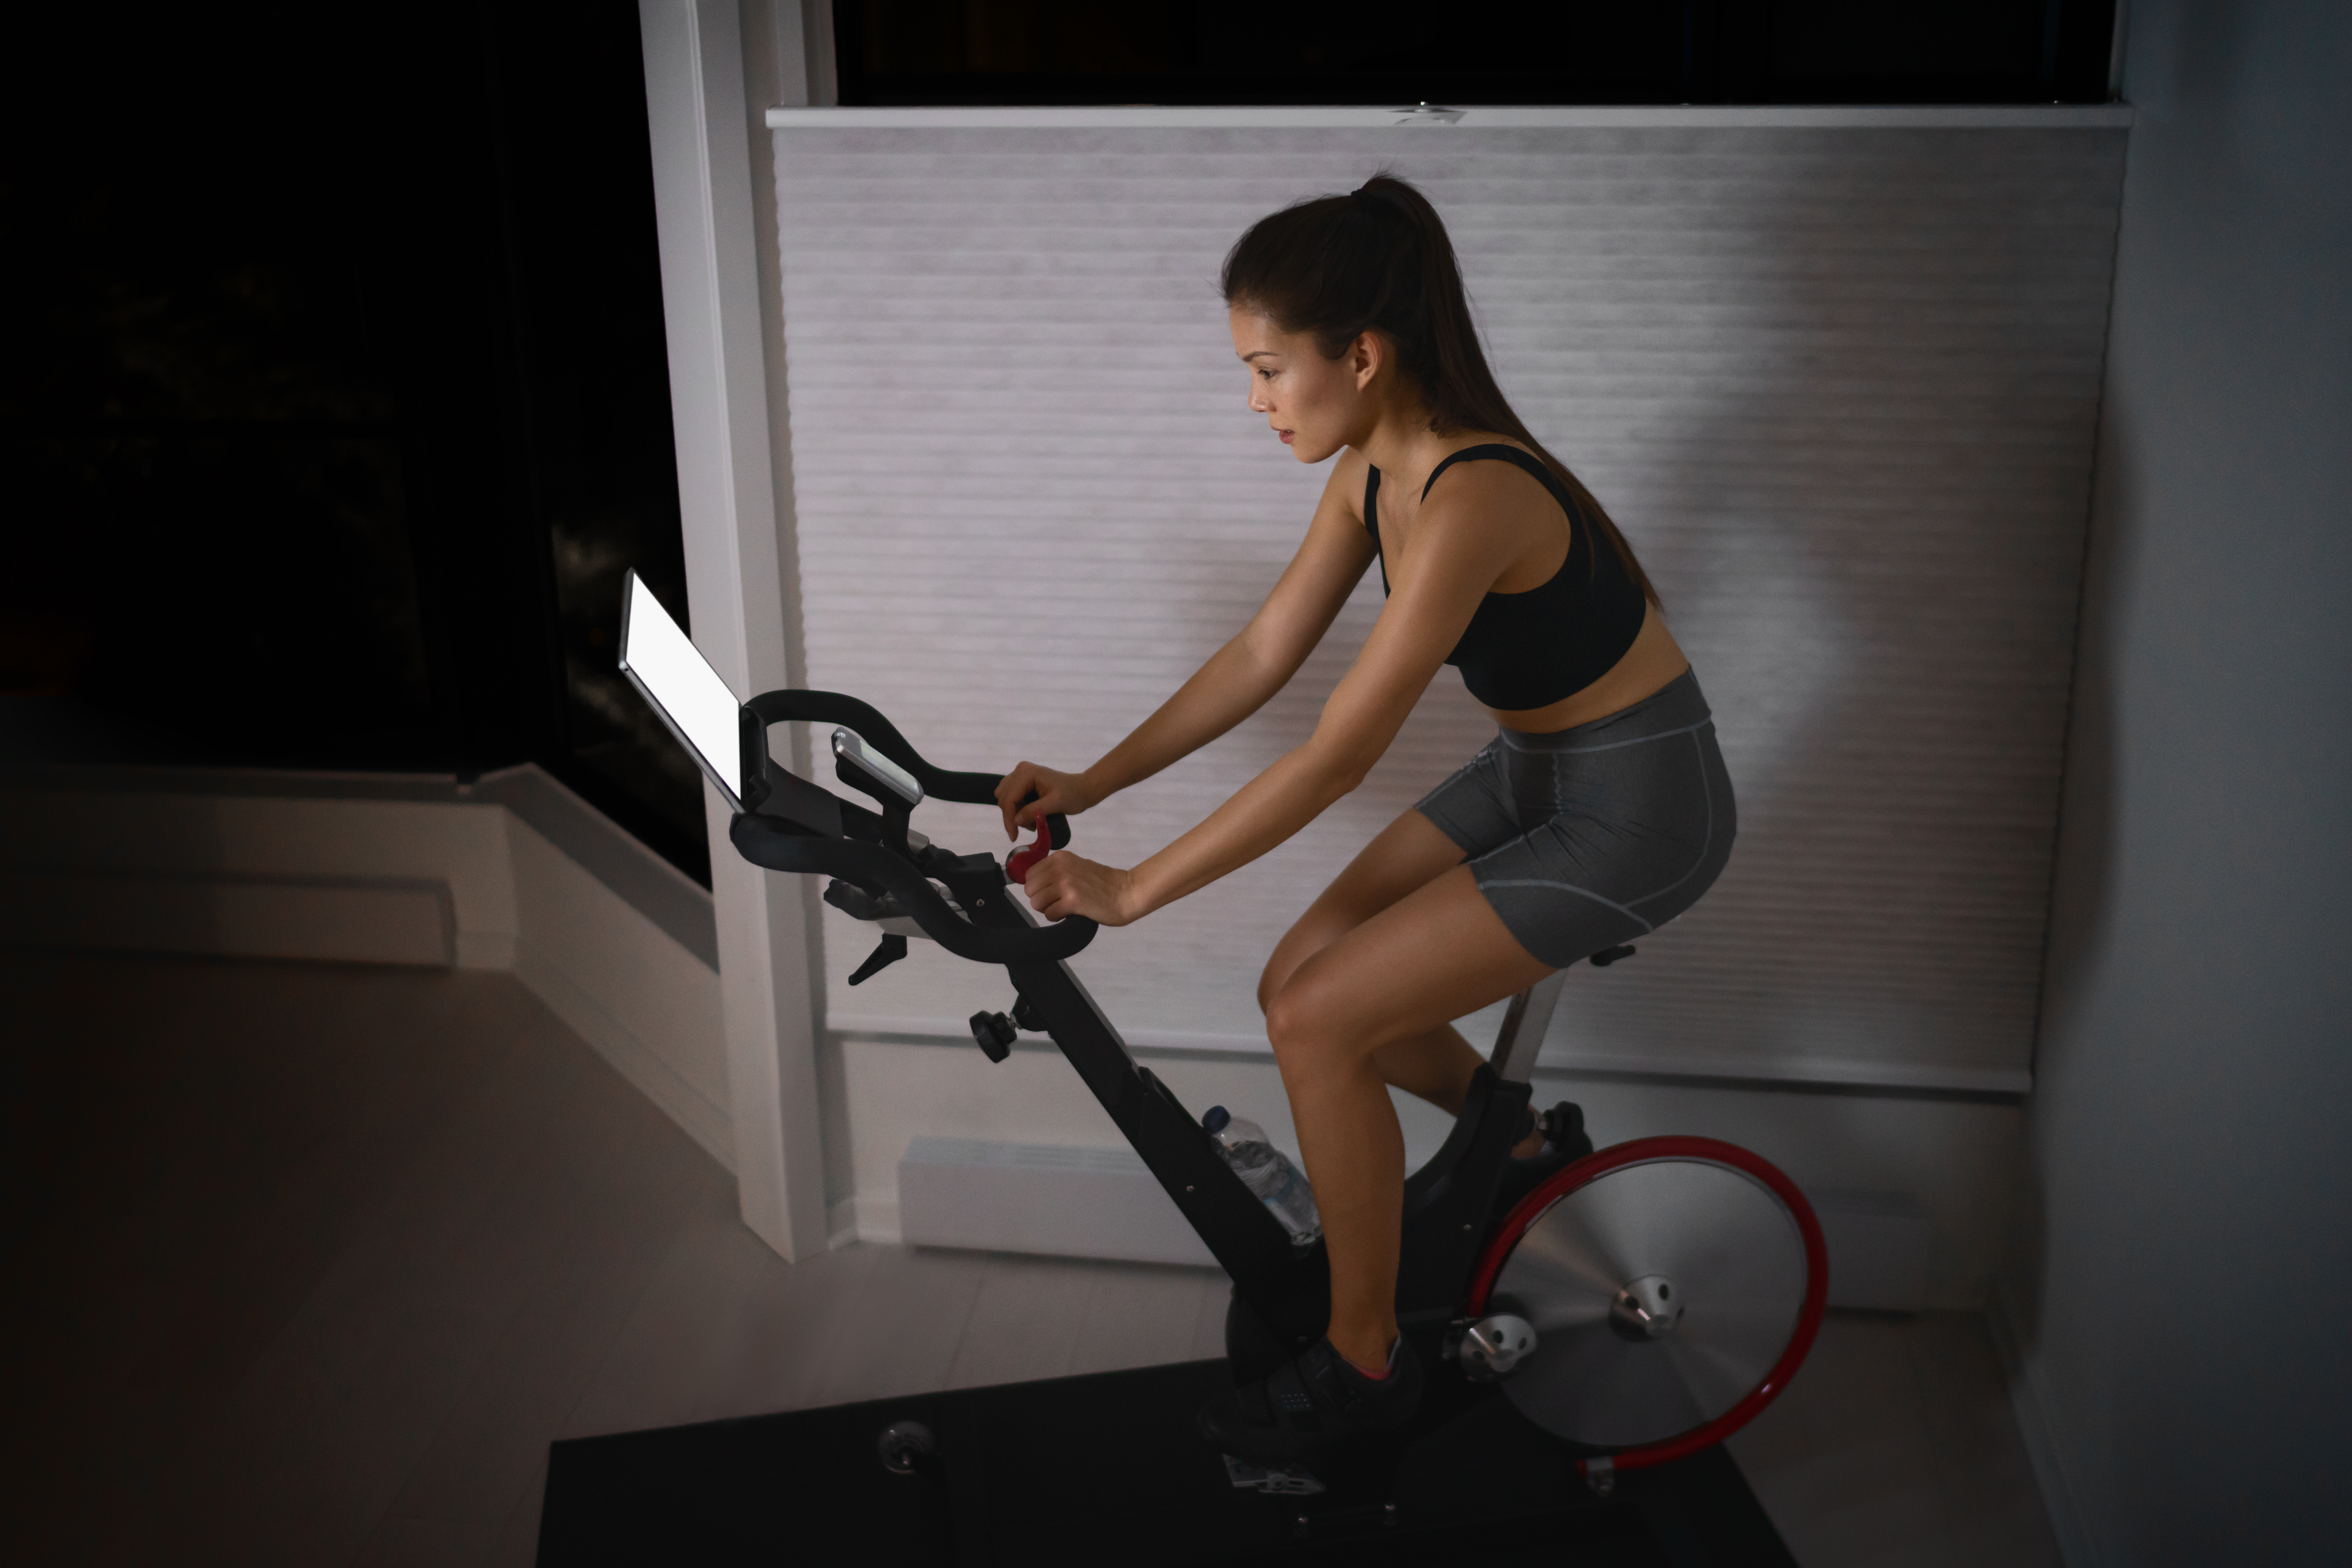 Home workout indoor stationary bike Asian girl biking screen with online classes woman training on smart fitness equipment indoors for cycling exercise. Late at night in bedroom